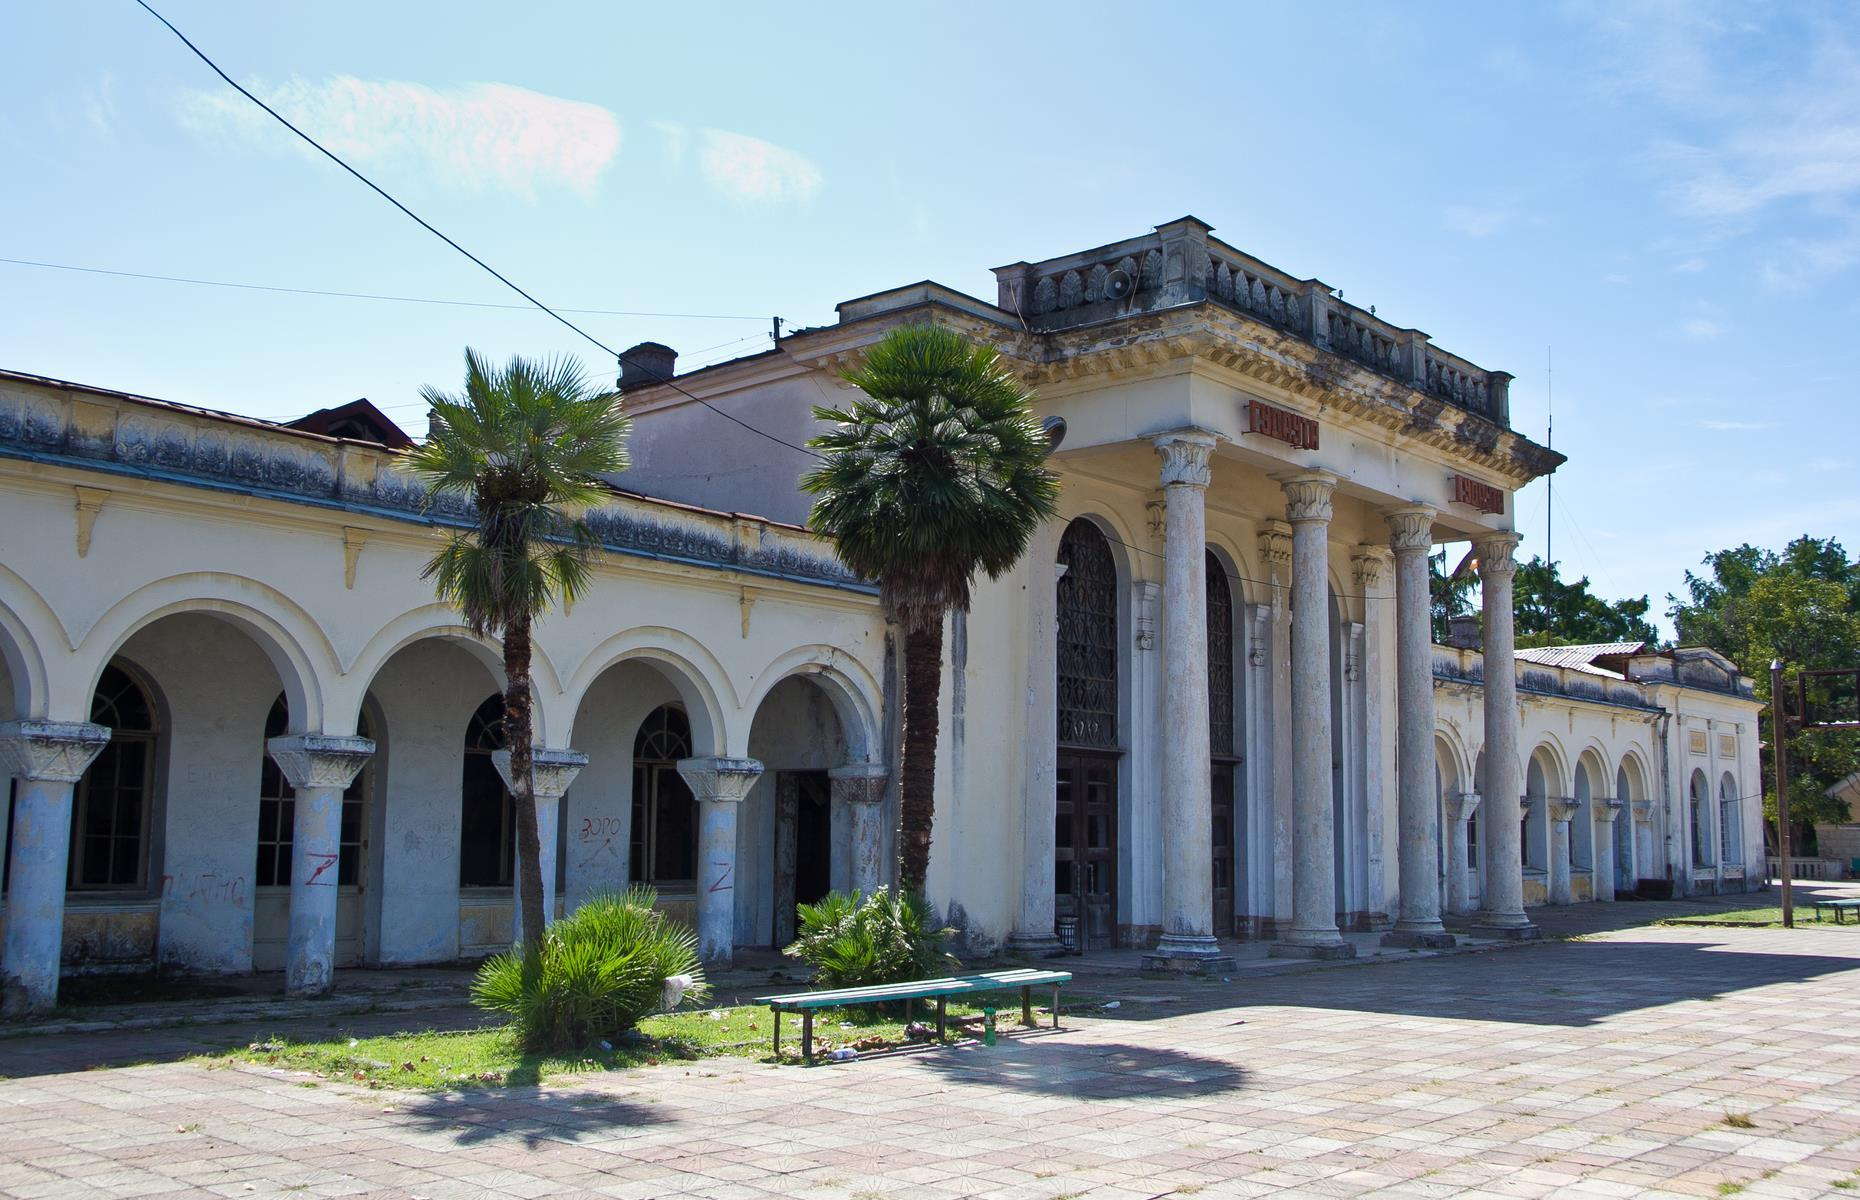 Slide 27 of 33: Abkhazia, a disputed territory on the eastern coast of the Black Sea, has several abandoned railway stations, including this one in Gudauta. The dilapidated but beautiful railway station was established during the Soviet era and has stood unused since the early 1990s.